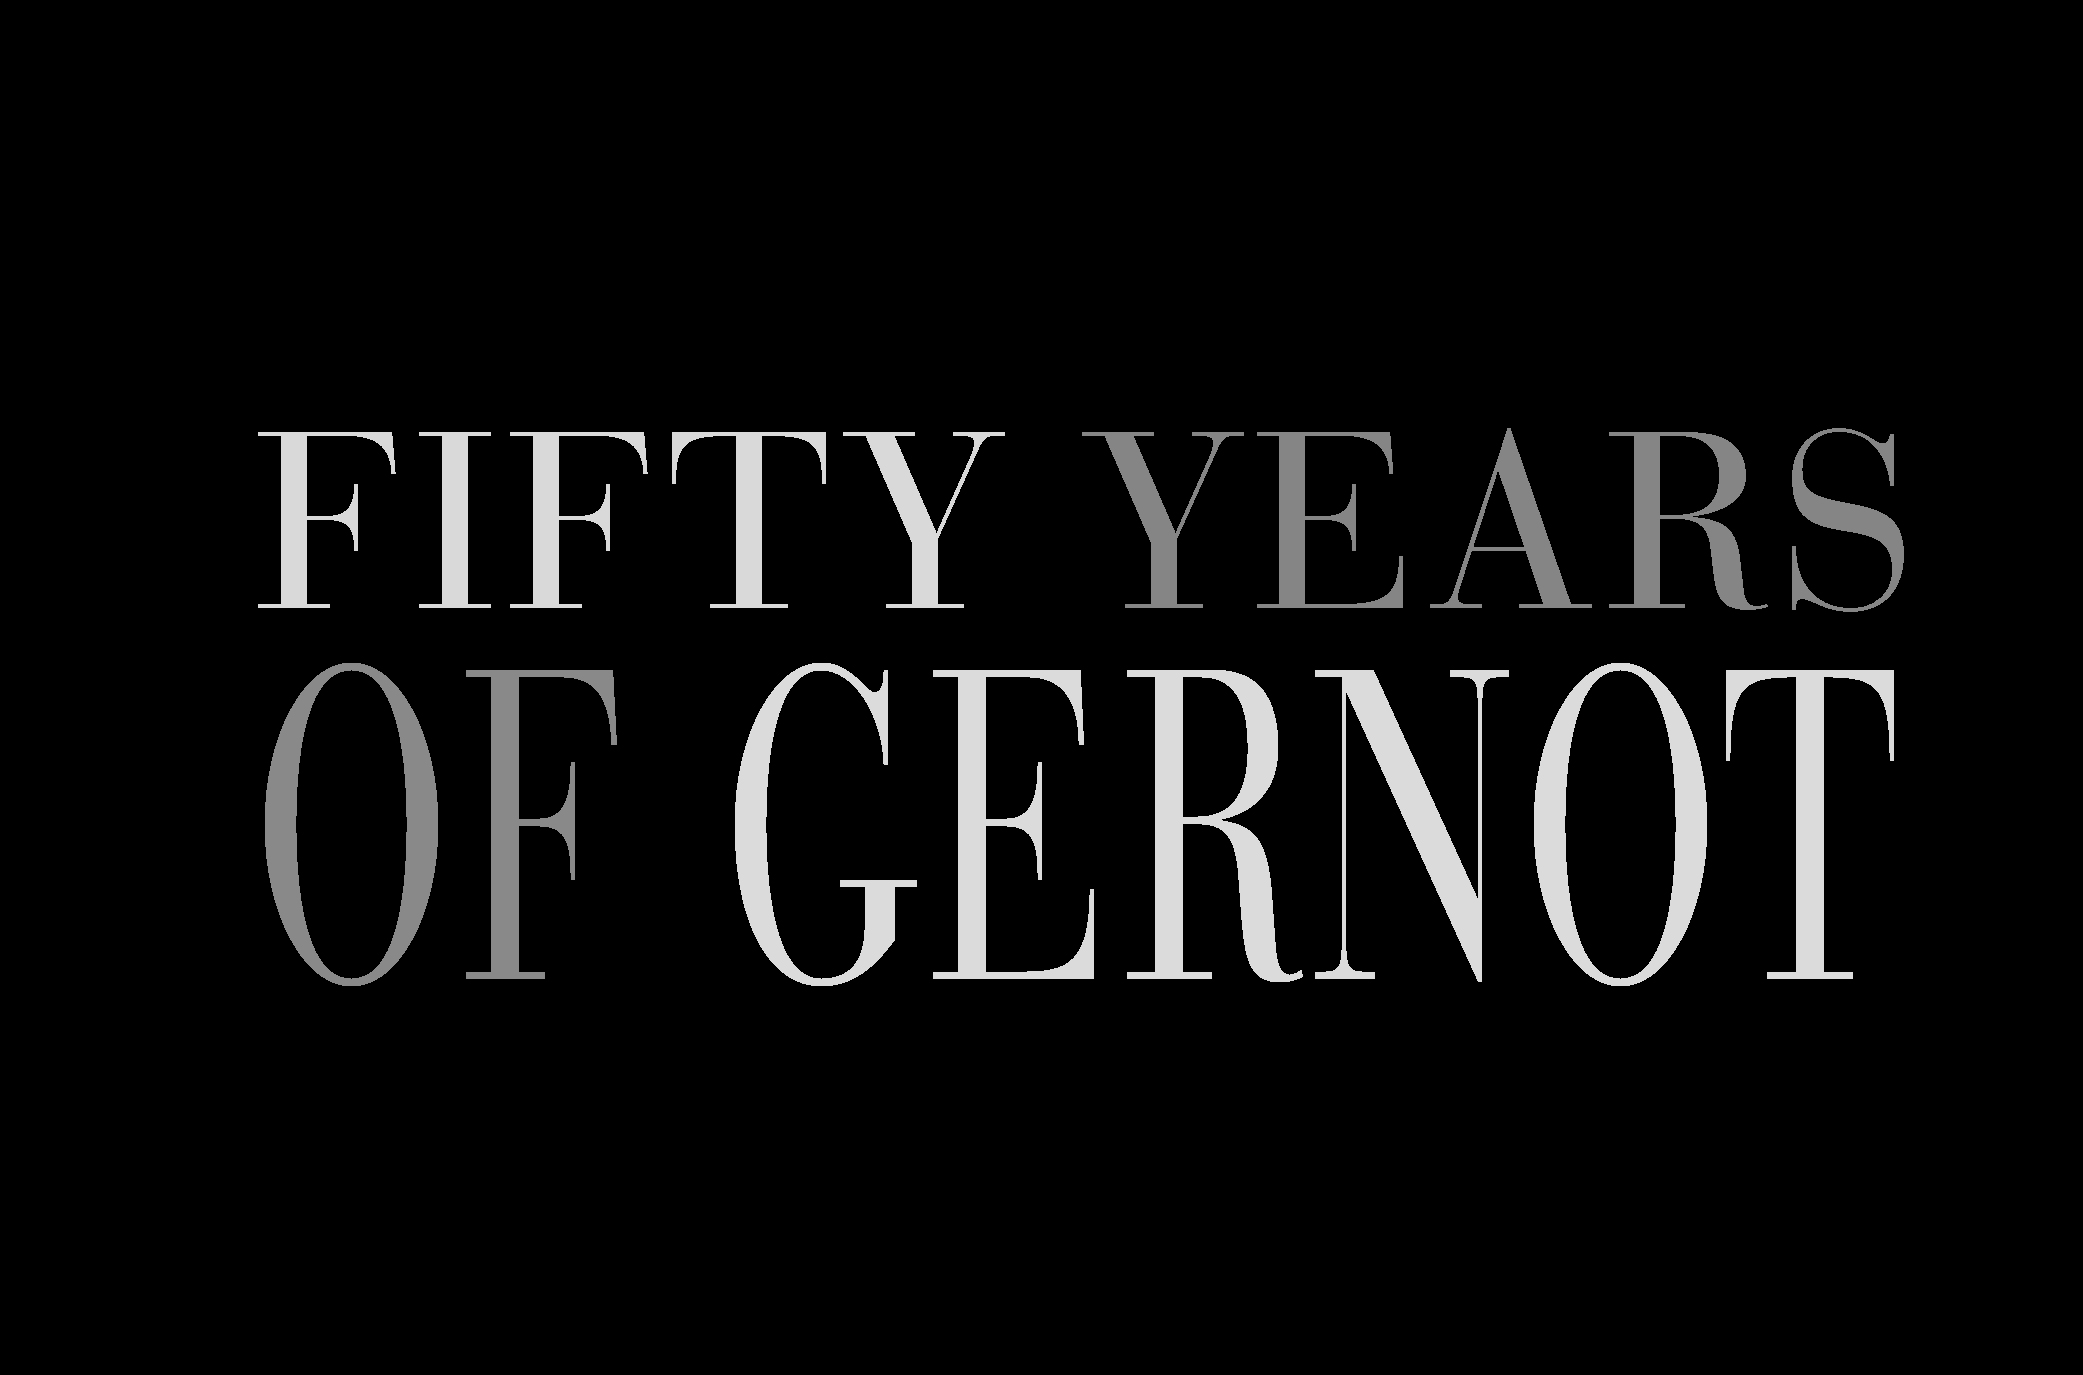 50 years of Gernot